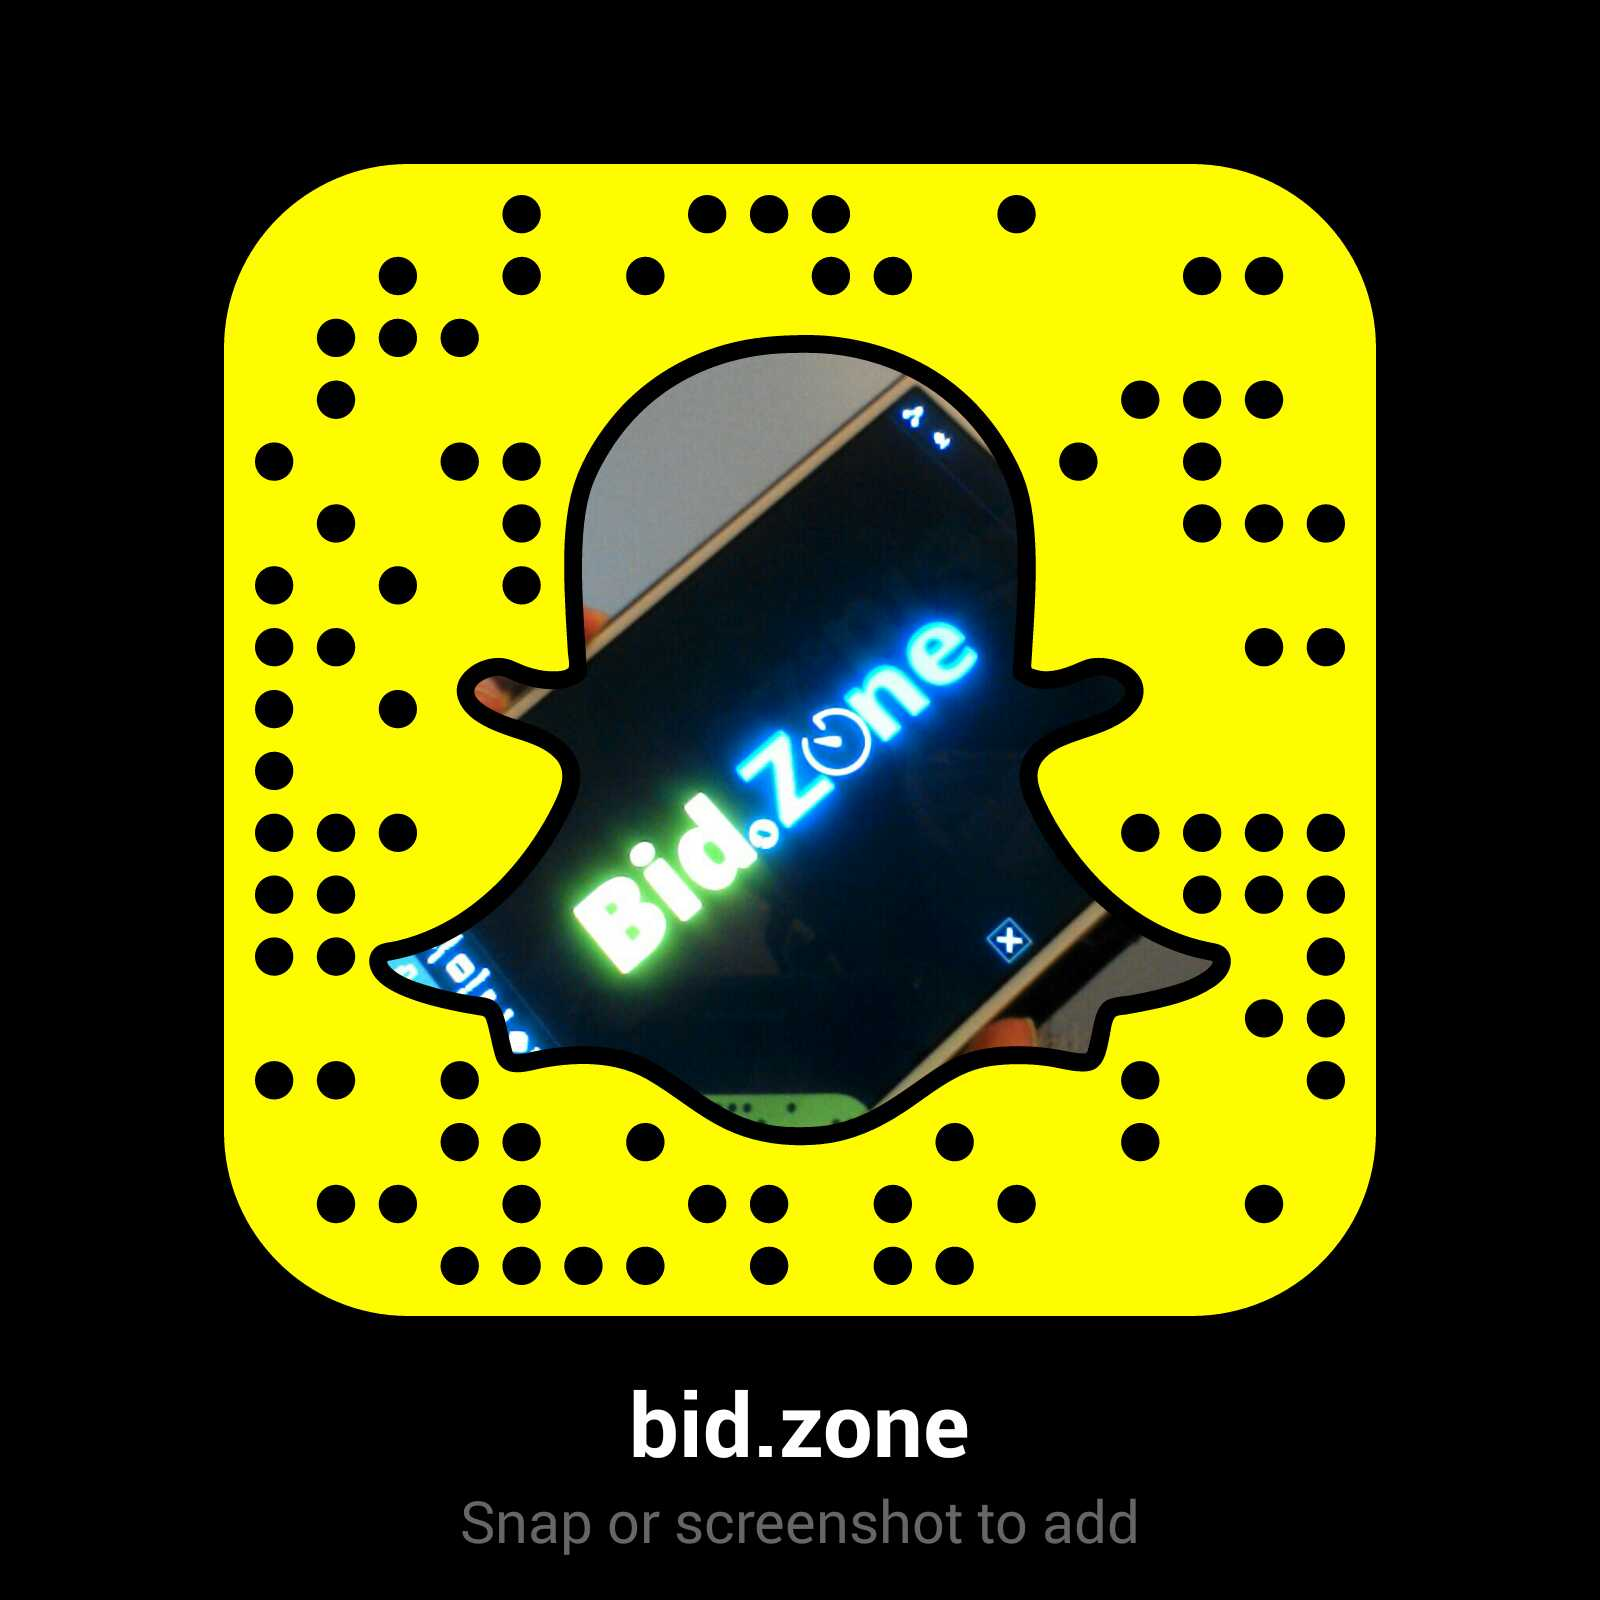 Bid Zone logo